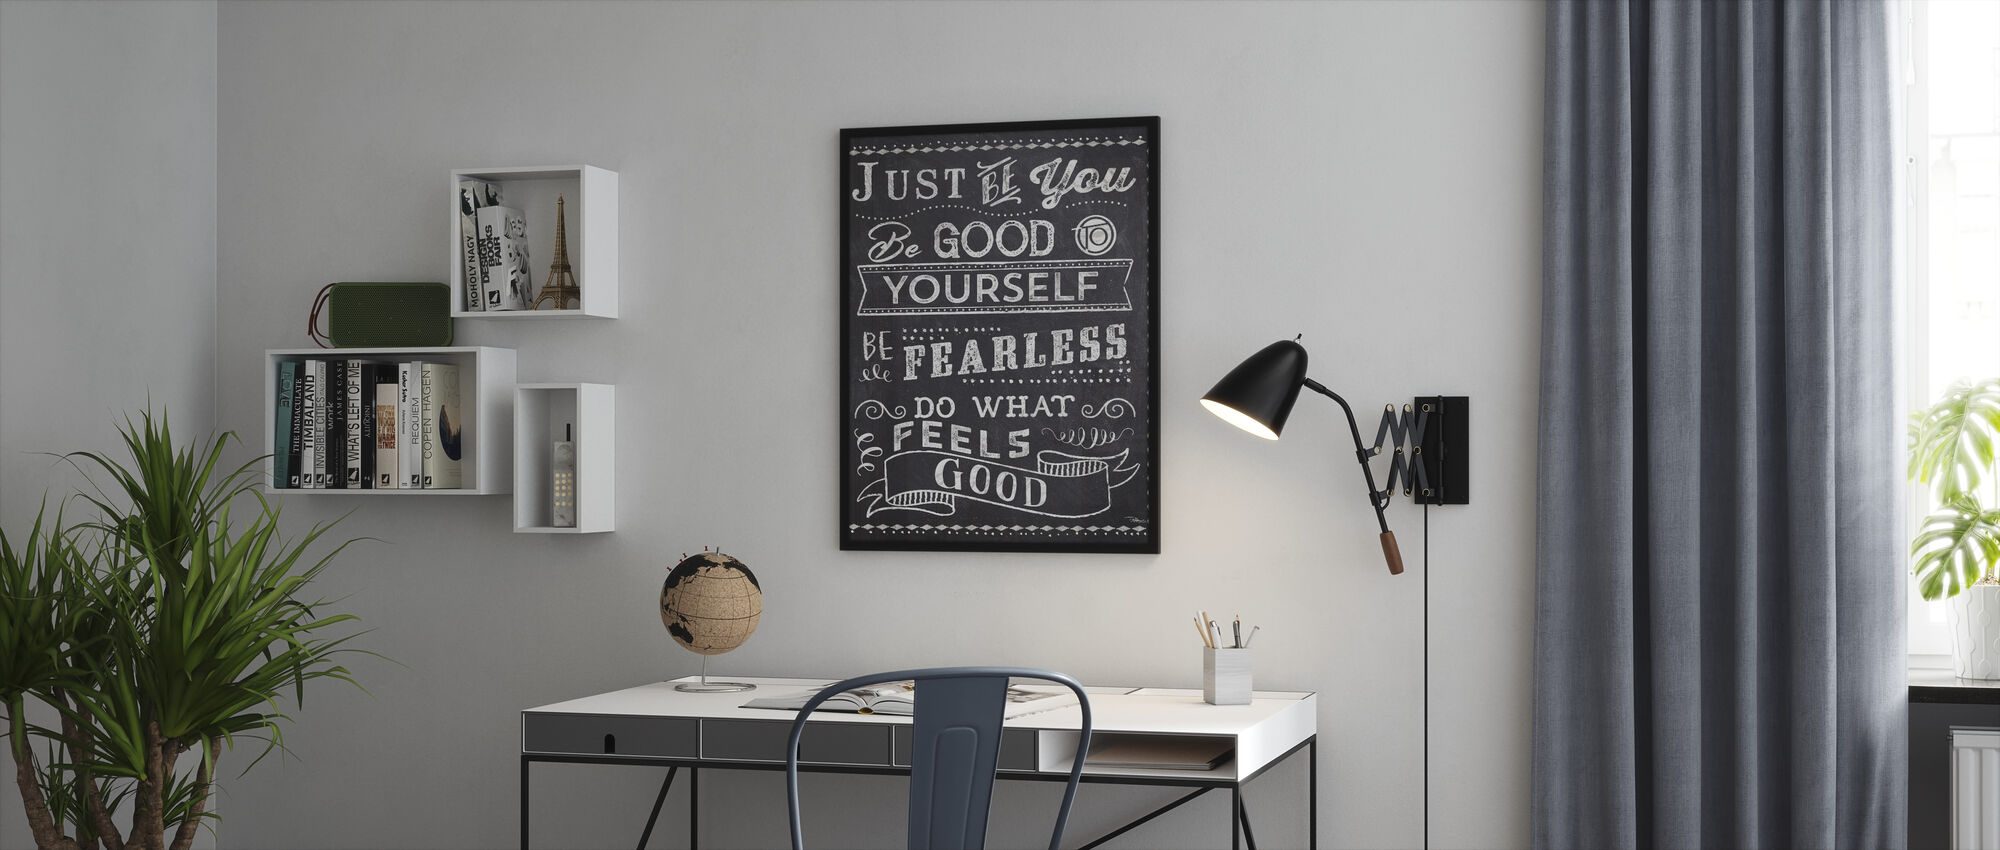 Just Be You II - Framed print - Office